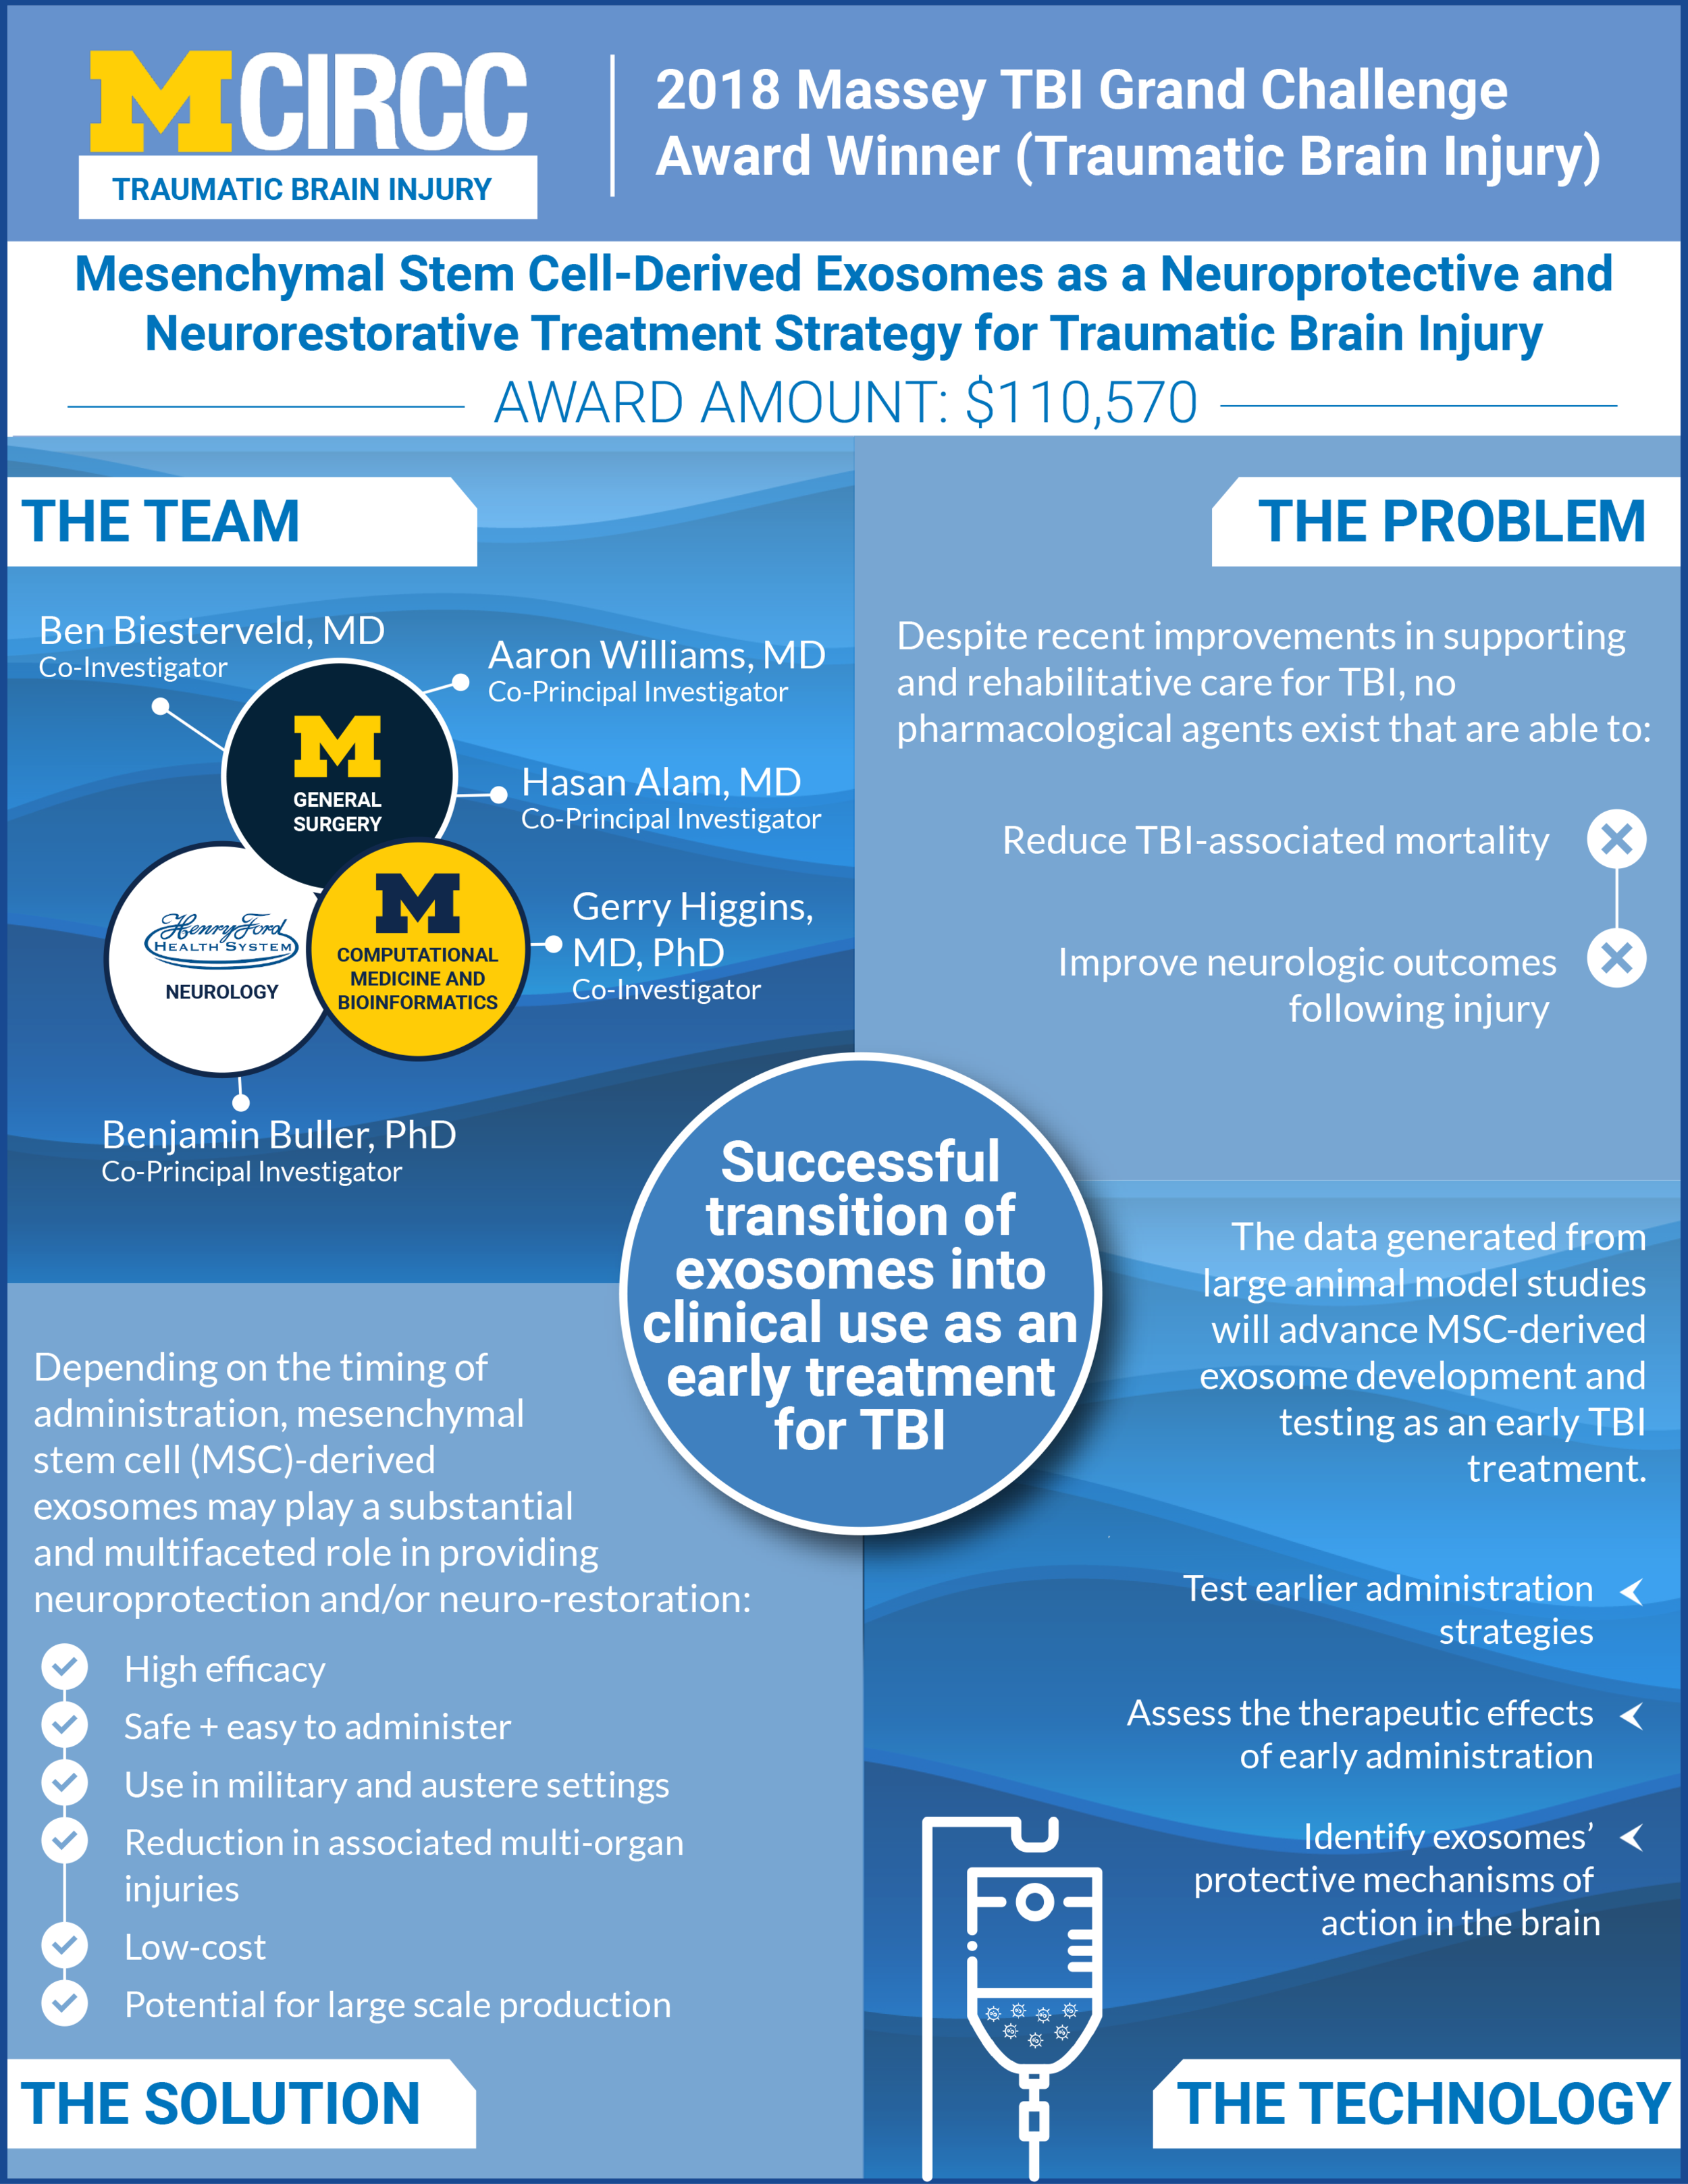 Mesenchymal Stem Cell-Derived Exosomes as a Neuroprotective and Neurorestorative Treatment Strategy for Traumatic Brain Injury.png